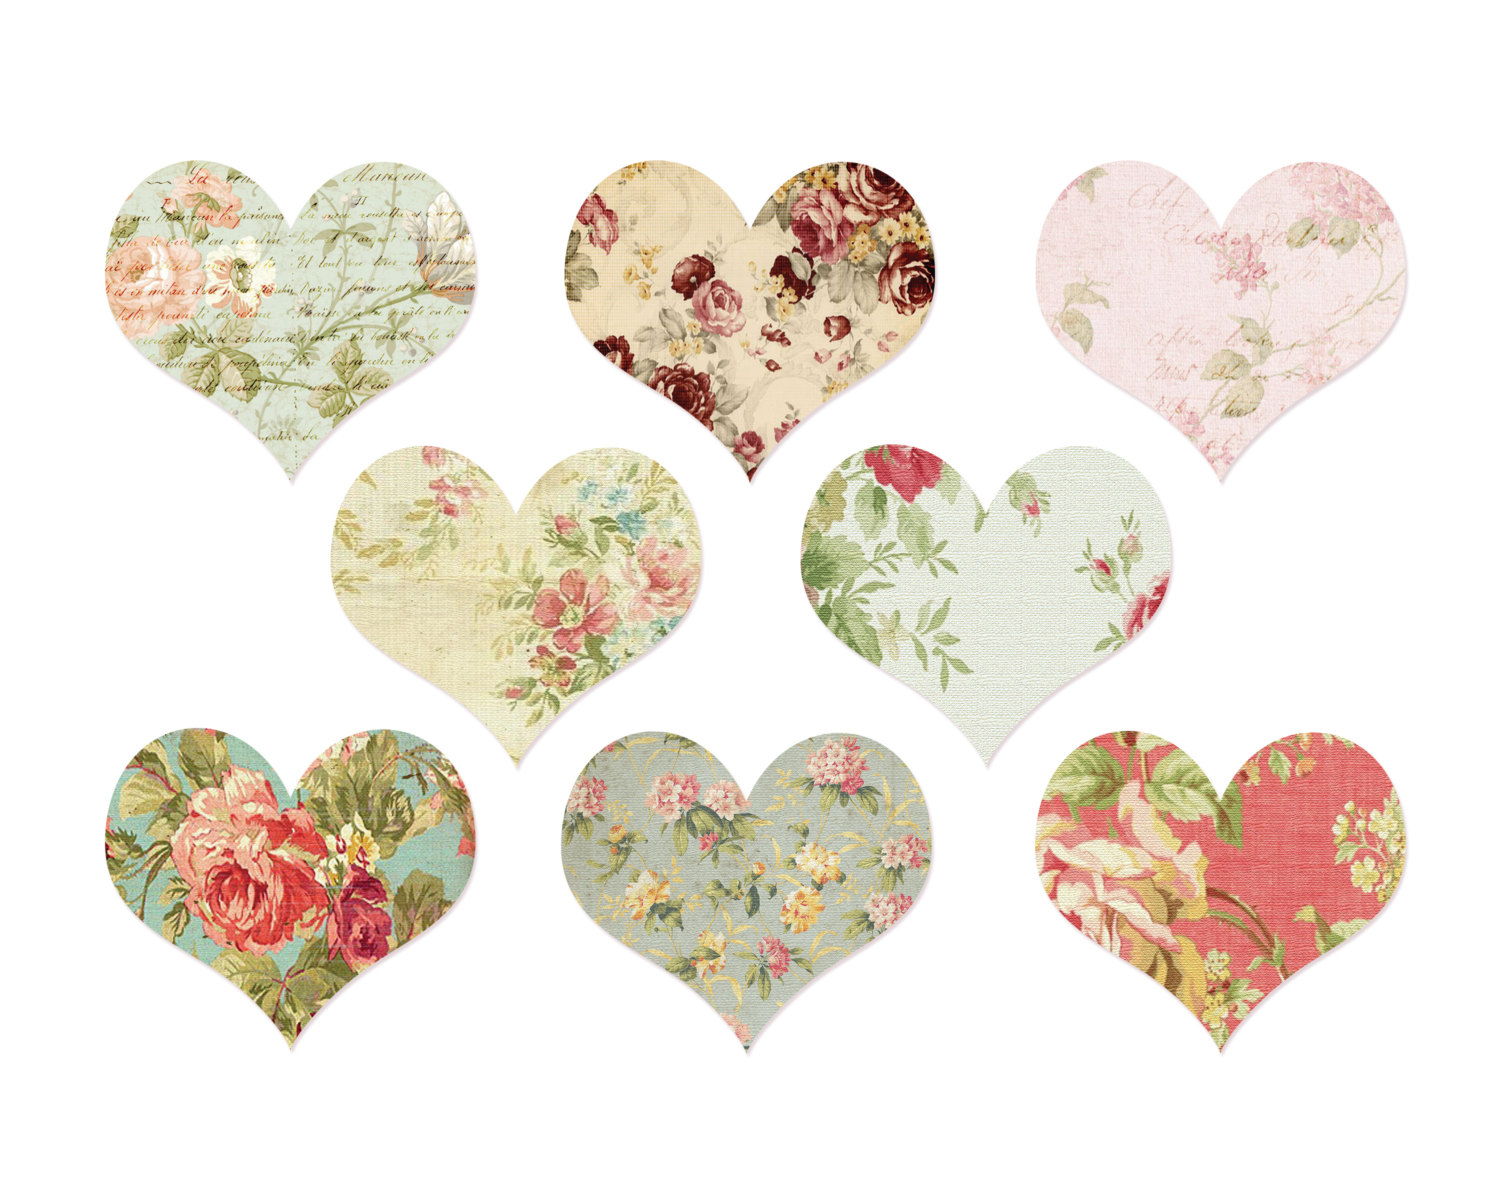 Vintage heart clipart images graphic free Vintage Heart Clipart - Clip Art Library graphic free